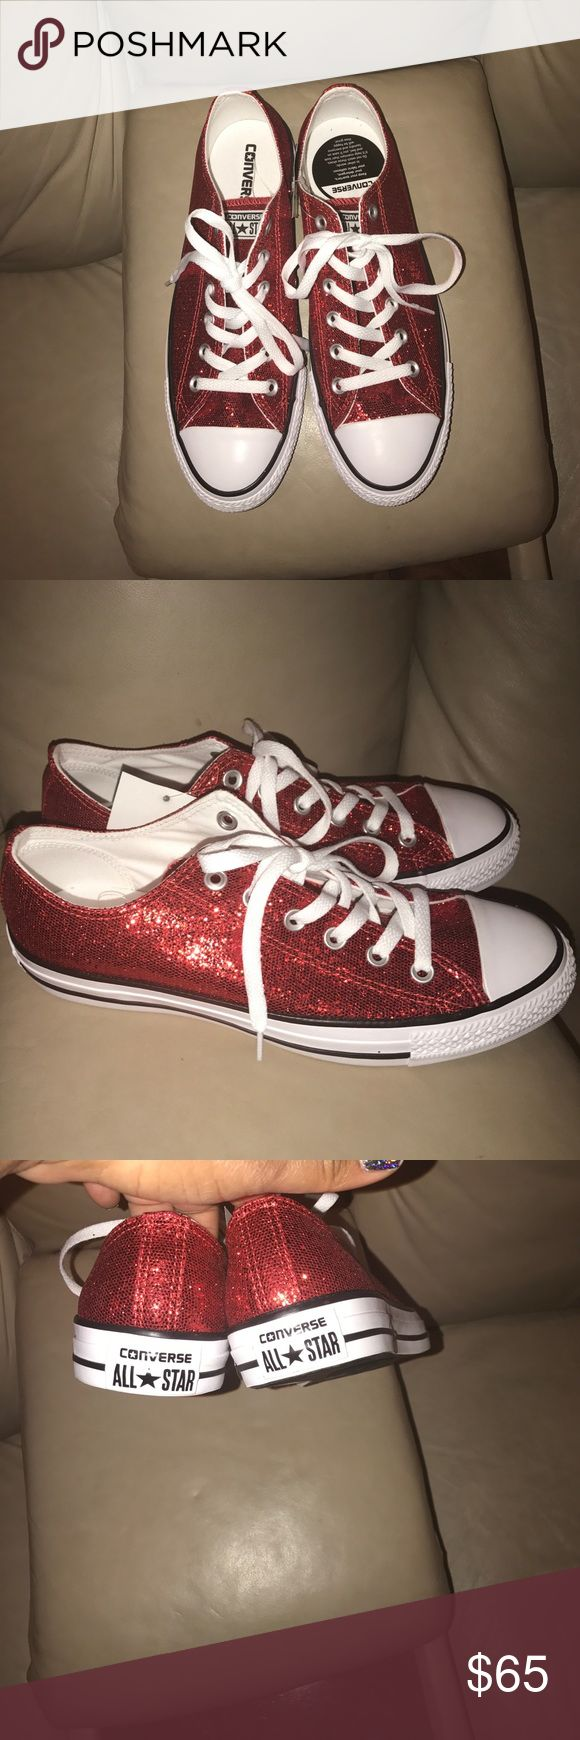 NWT Chuck Taylor's Size woman's 10 SUPER CUTE WOMAN's Size 10 Red Glitter Converse Chuck Taylor's men's size 8 Converse Shoes Sneakers